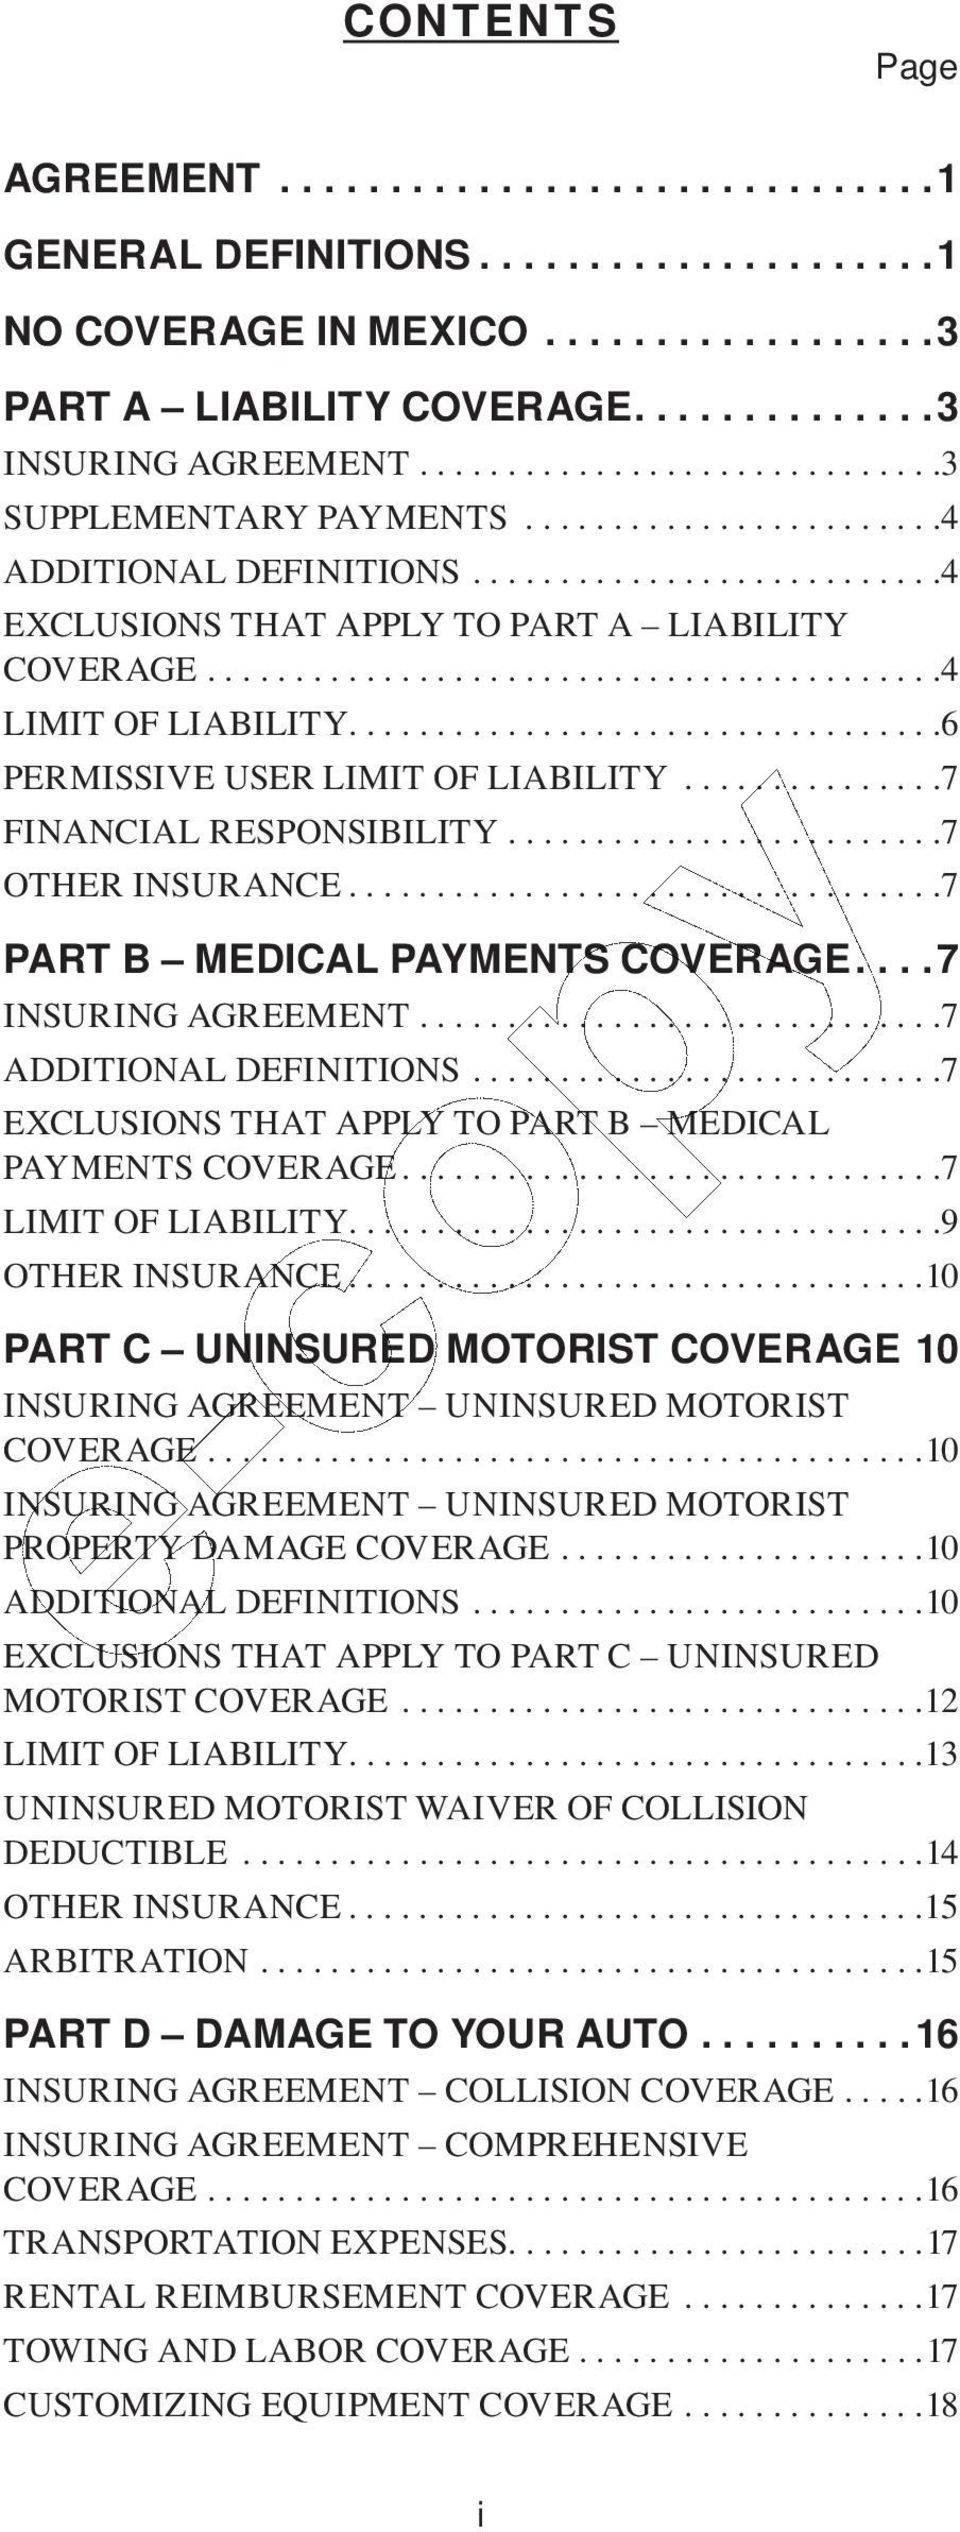 .........................................4 LIMIT OF LIABILITY..................................6 PERMISSIVE USER LIMIT OF LIABILITY...............7 FINANCIAL RESPONSIBILITY.........................7 OTHER INSURANCE.